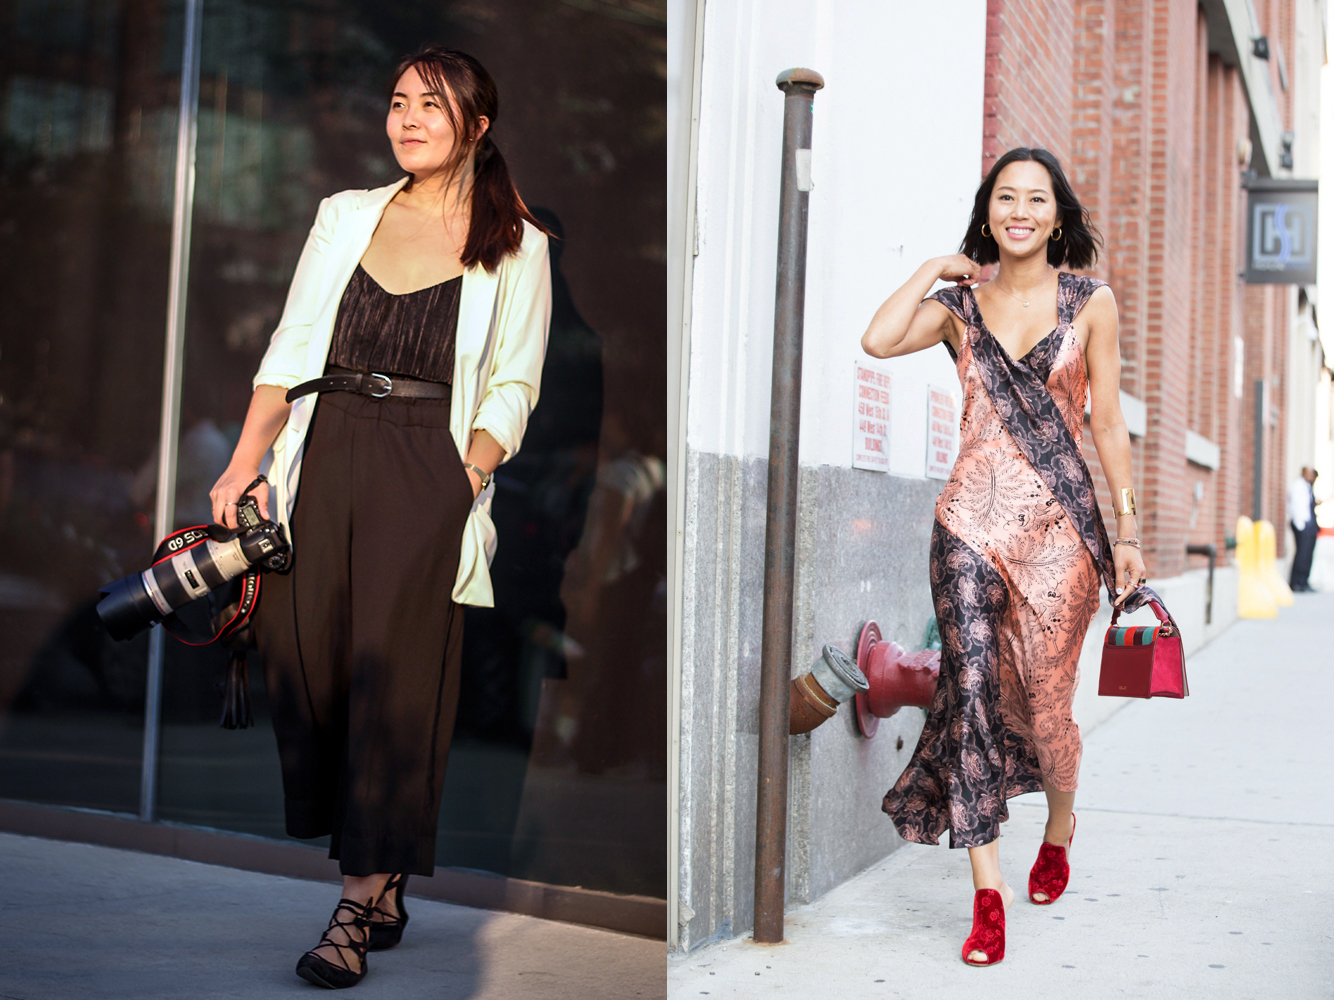 Photo of me (left) by  Gizela Zaqueu . Wearing an outfit that costs less than my lens rental, and wishing I could look like  Aimee Song  (right).